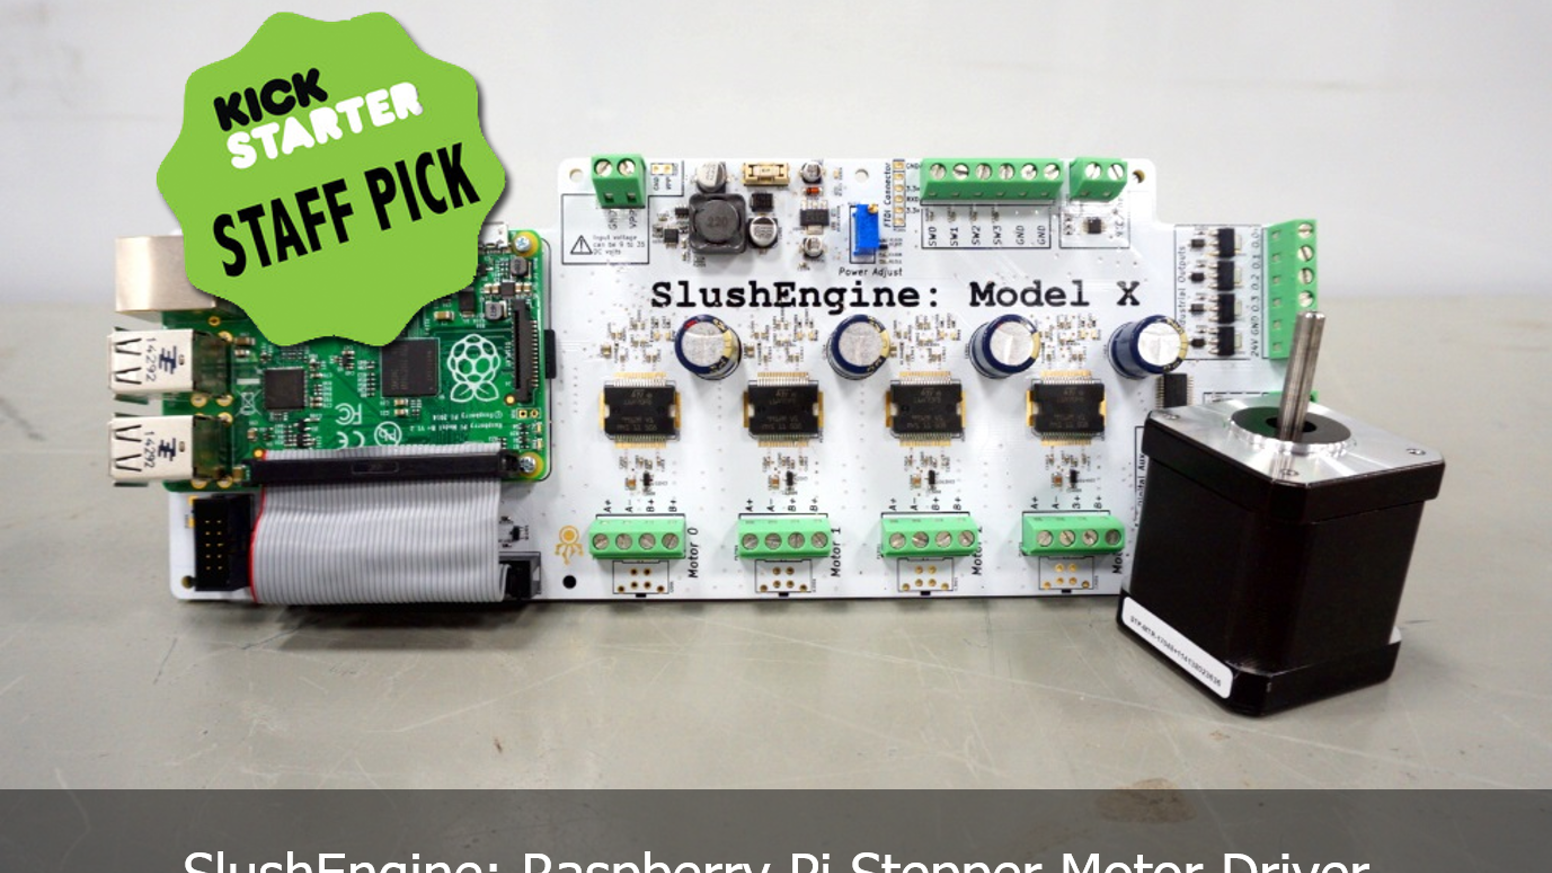 The SlushEngine is an advanced motor driver that works with the Raspberry Pi to move motors with precision, speed, and simplicity.